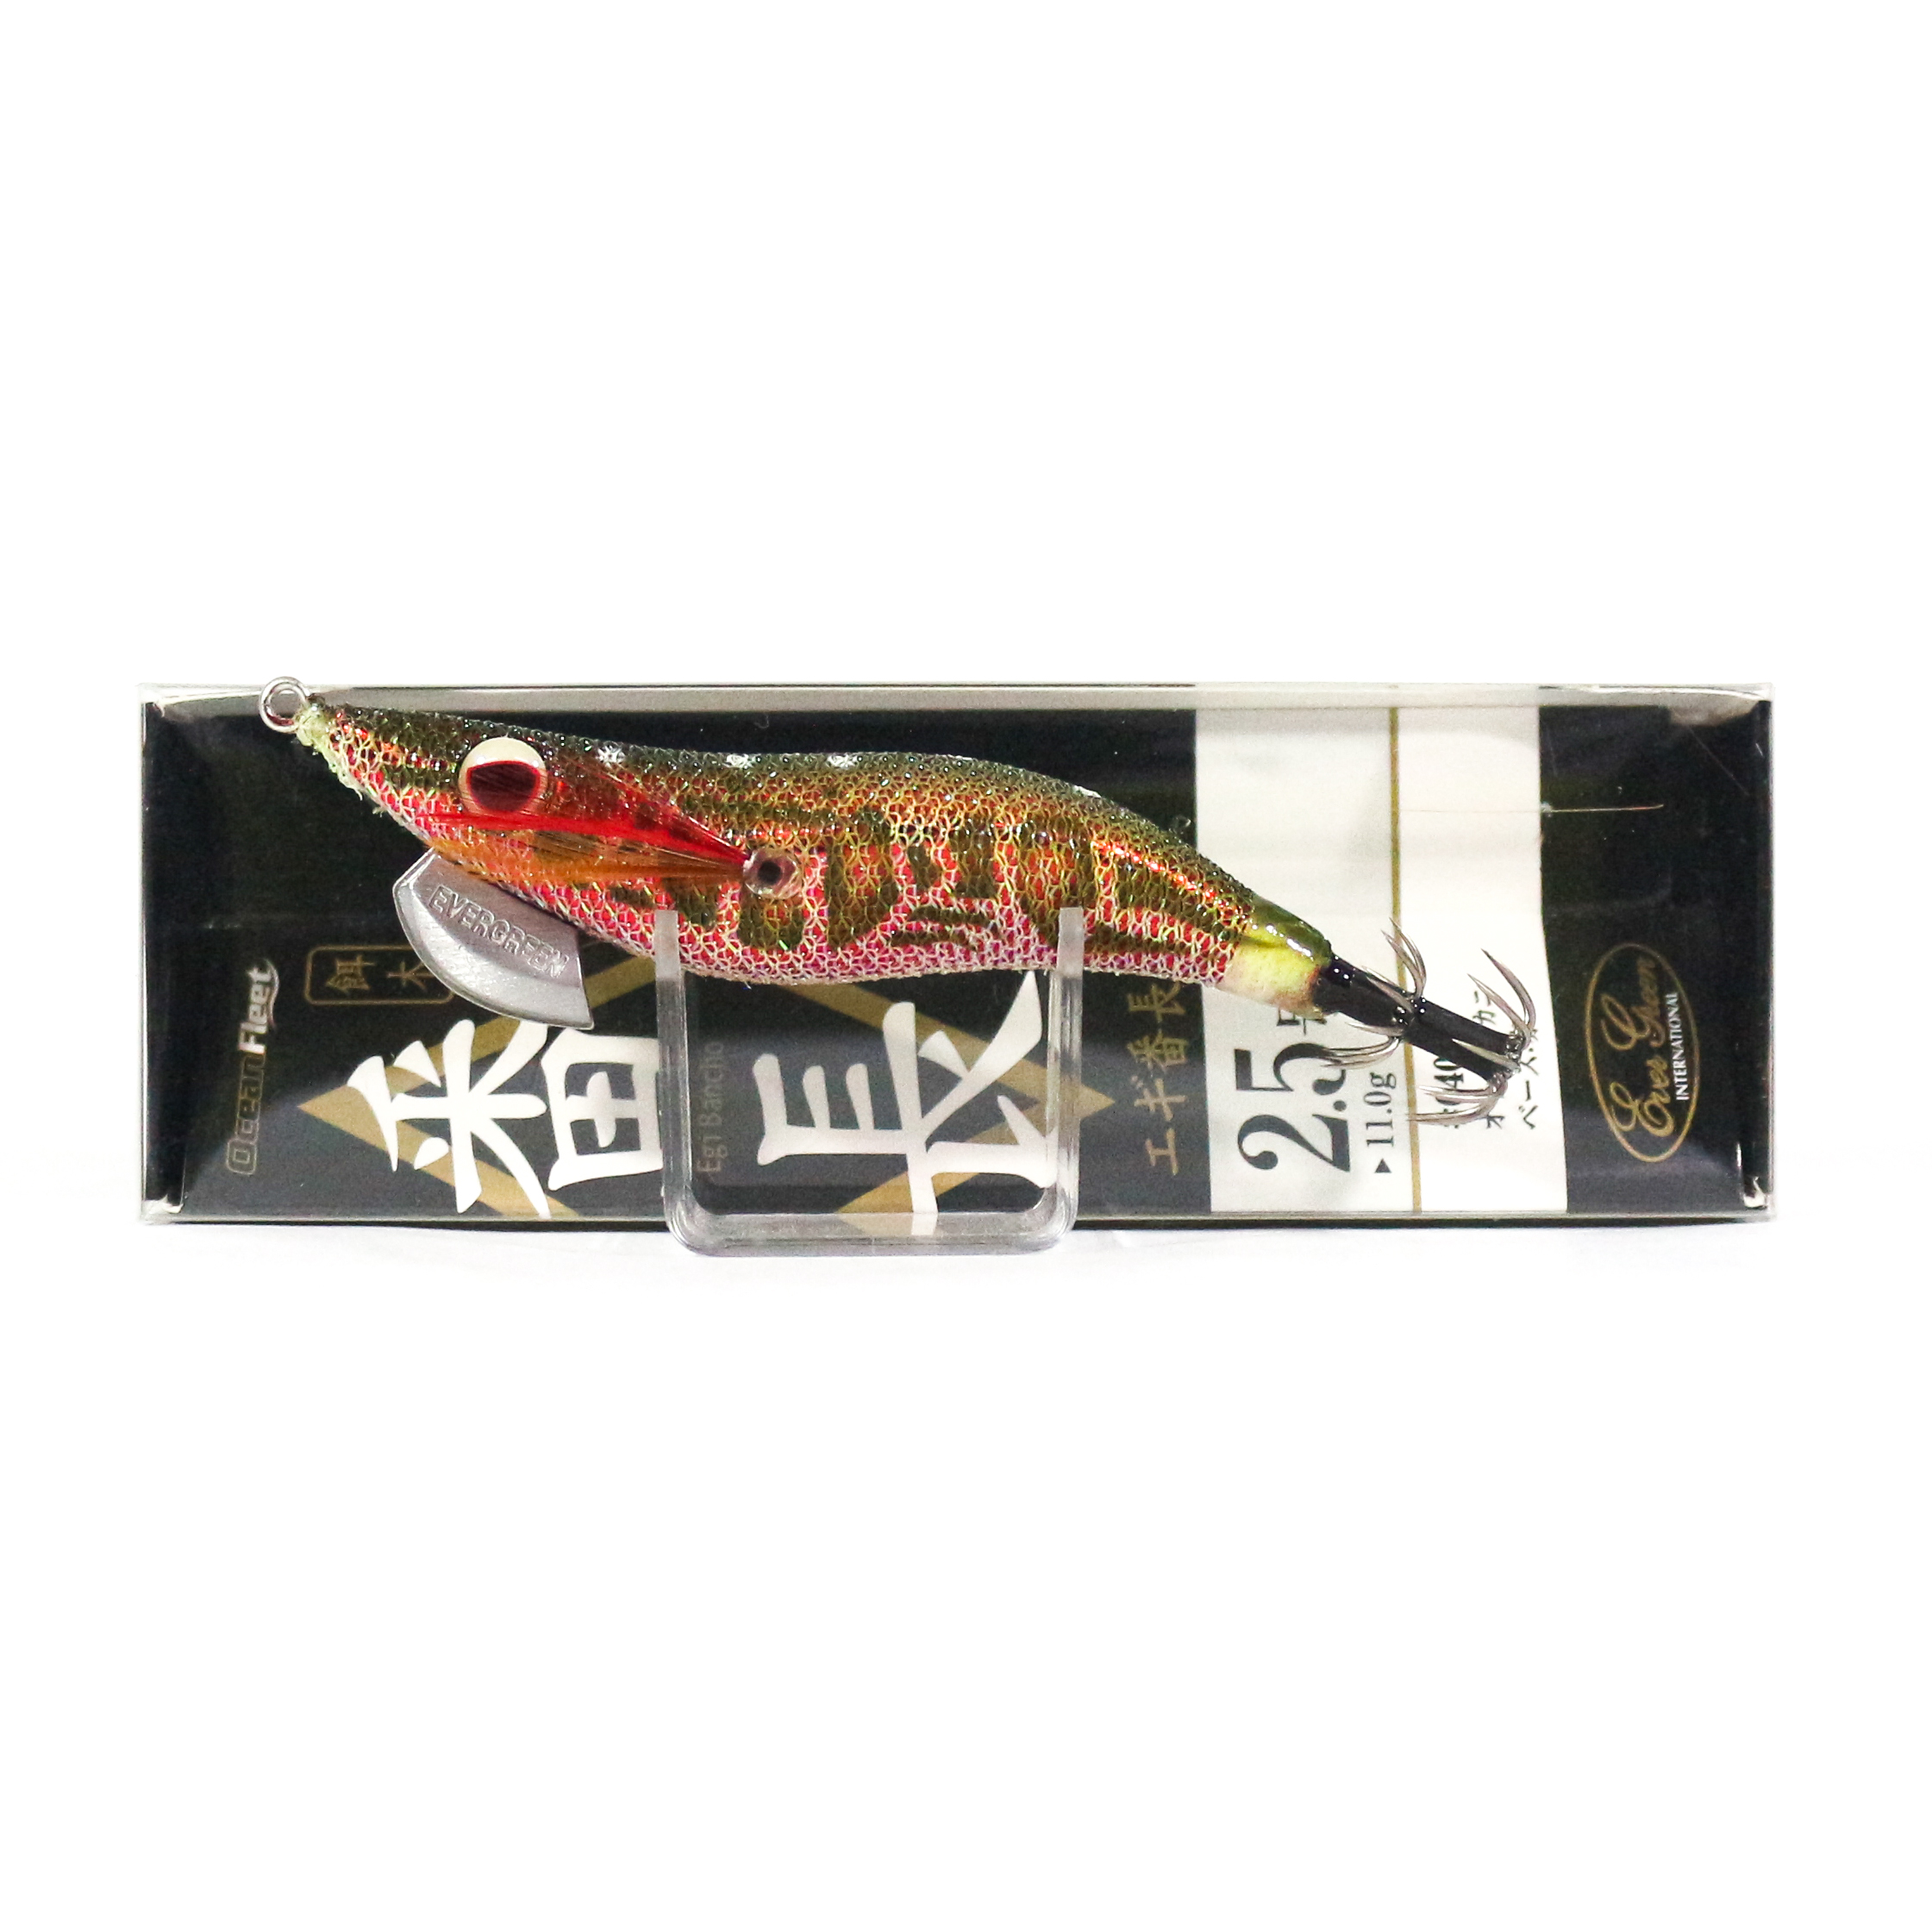 Evergreen Ocean Fleet Custom Squid Jig Lure 2.5 0407R (2613)